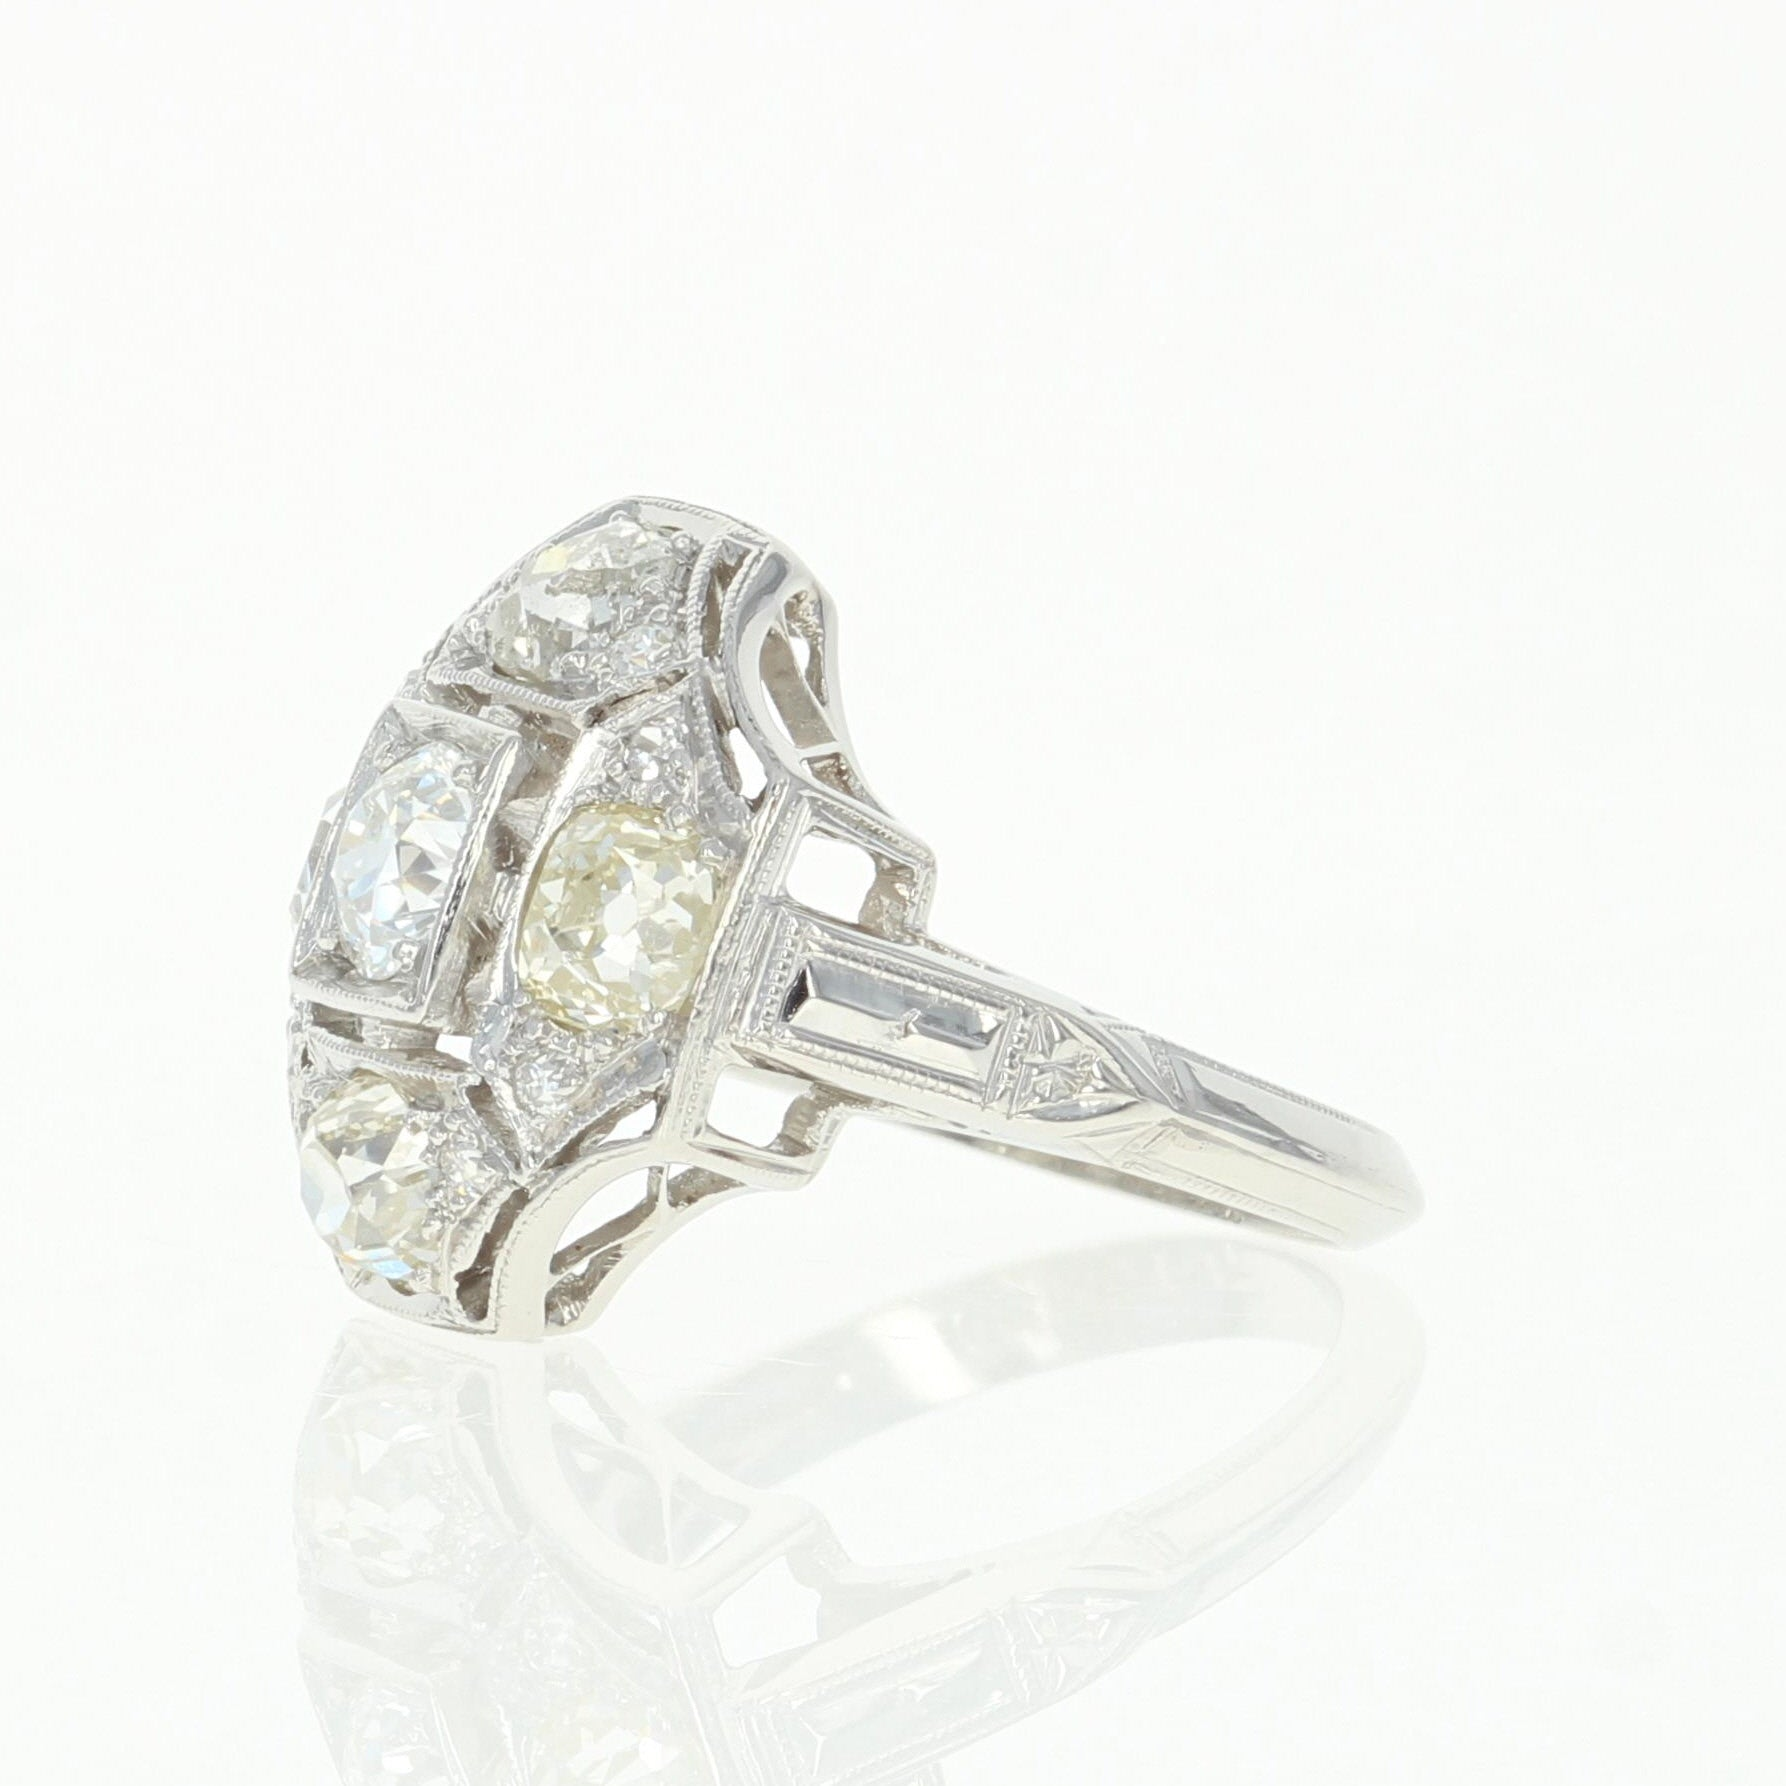 1.58ctw Diamond Art Deco Ring Platinum